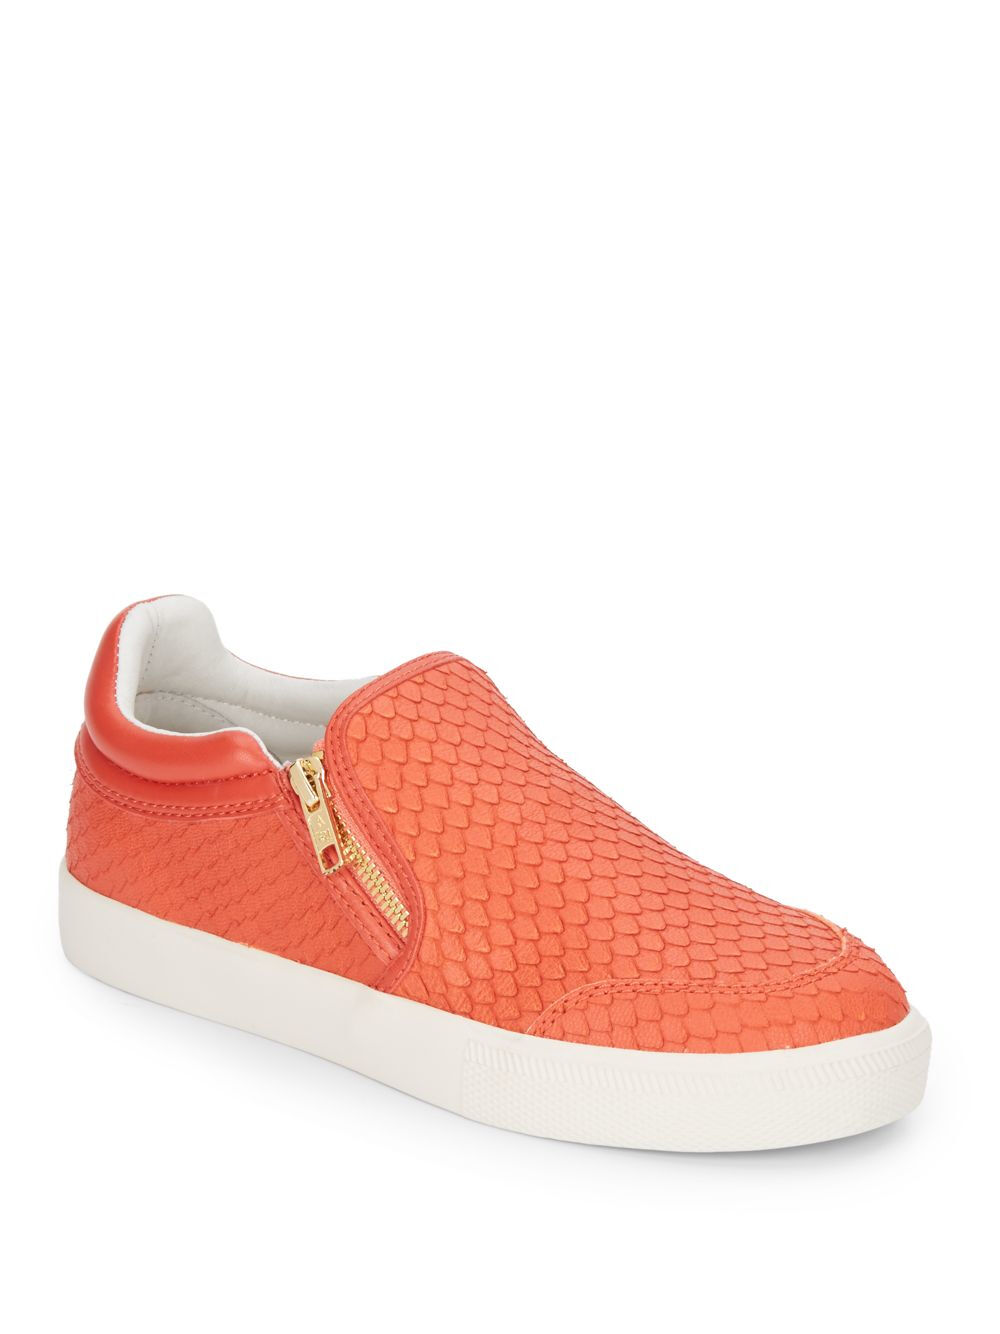 ASH Intense Embossed Leather Slip-on Sneakers, Coral SIZE 37